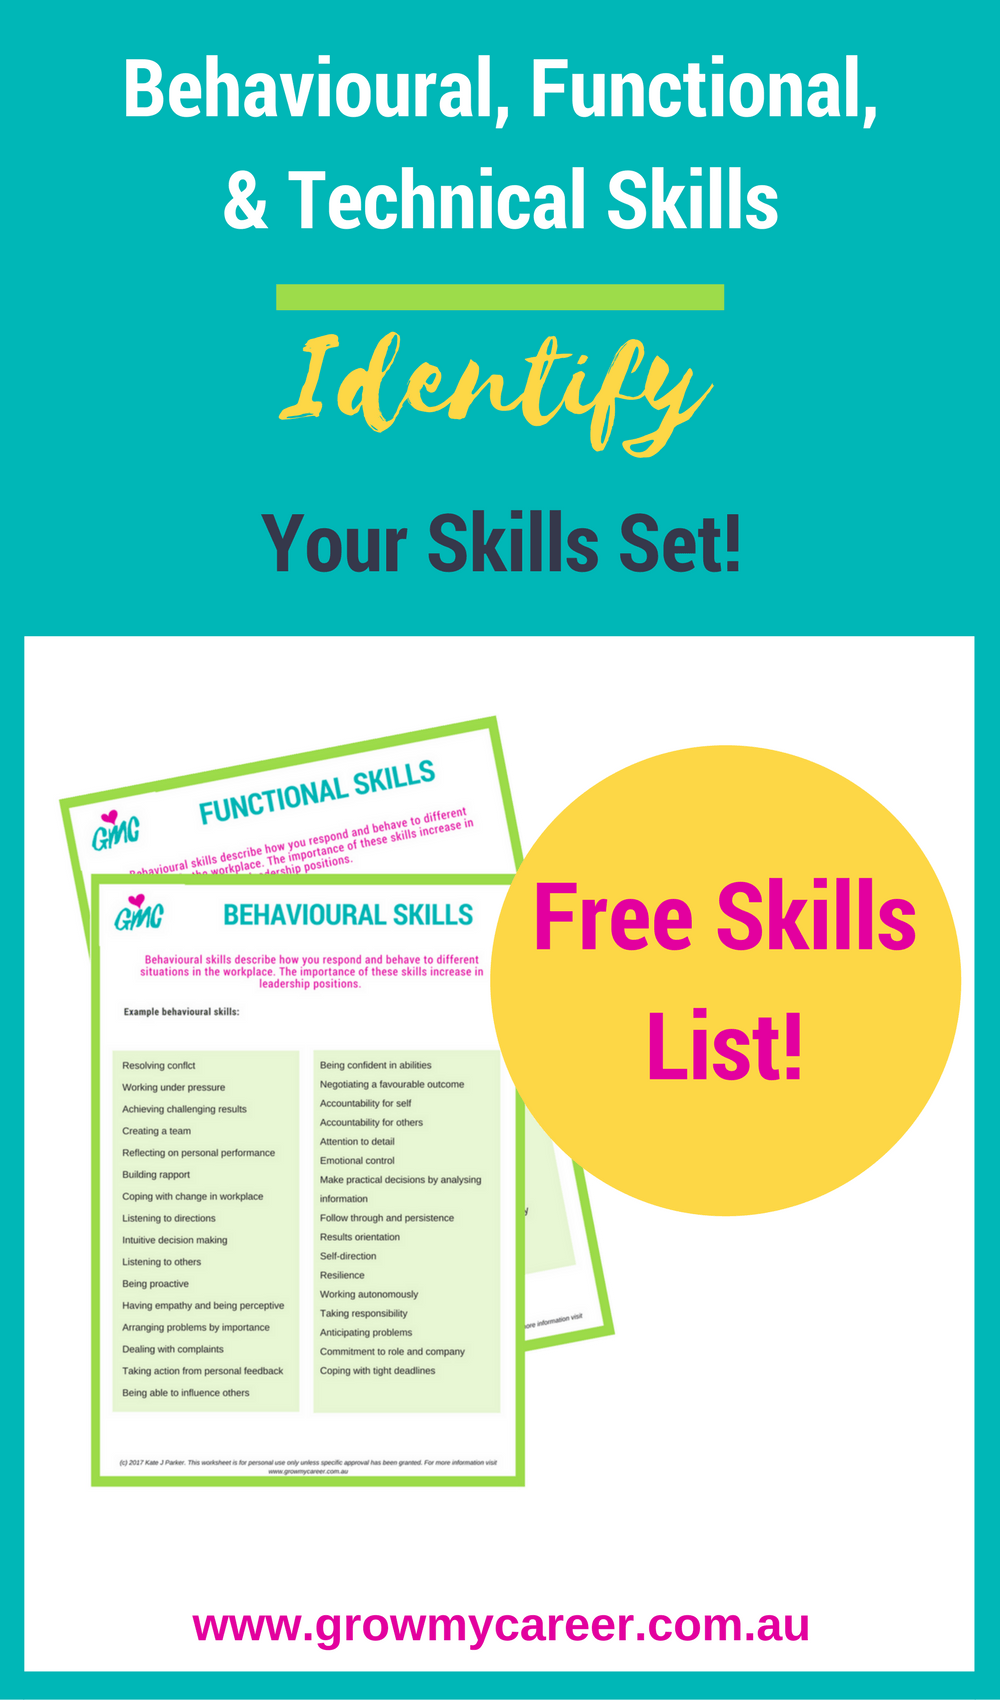 Skills List Identify Your Skills Set With This List Of Behavioural And .